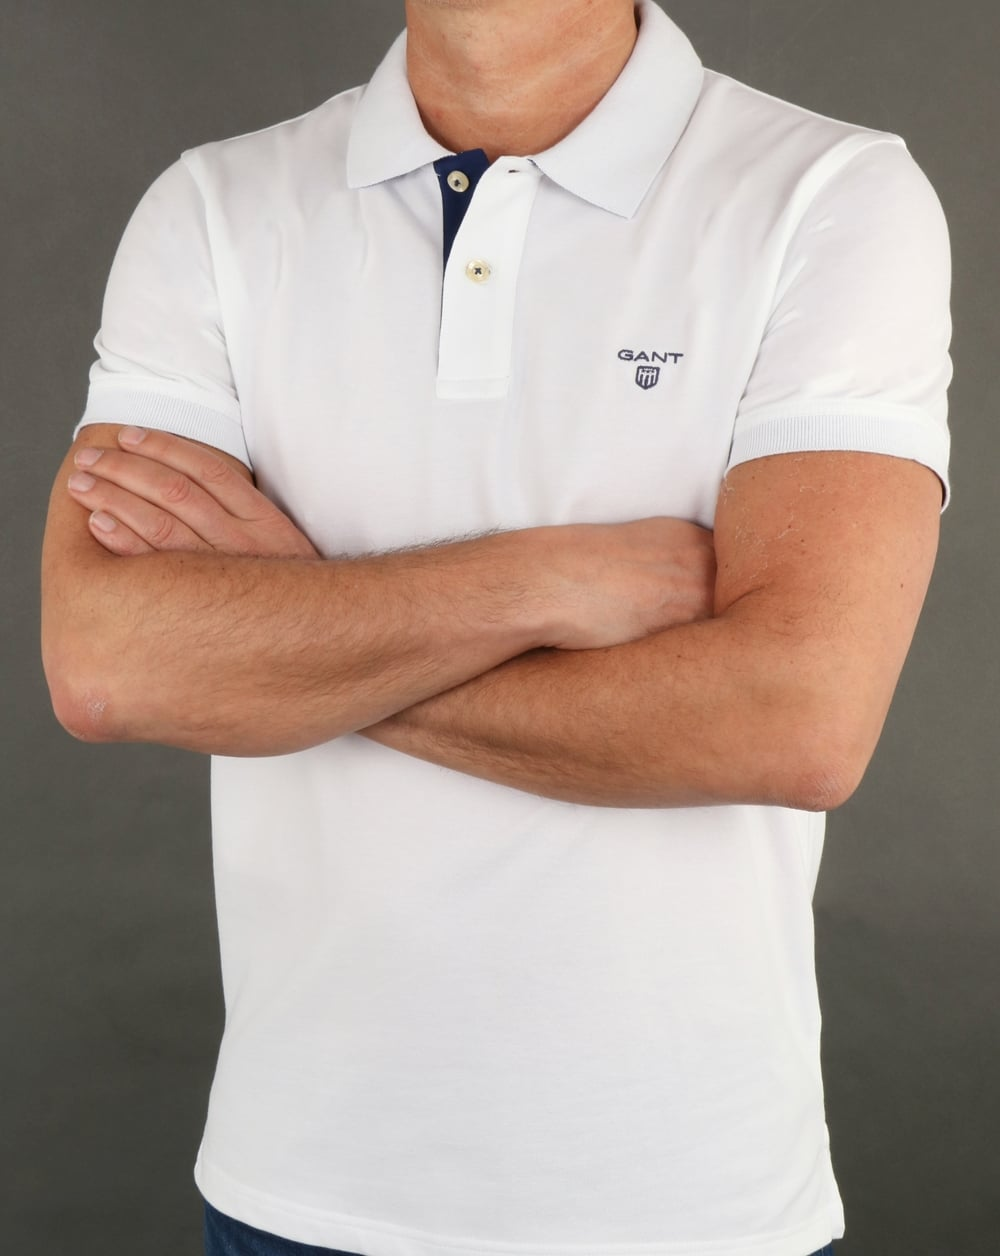 75acd2a039b9 Gant Contrast Collar Polo Shirt White, Mens, Polo, Cotton